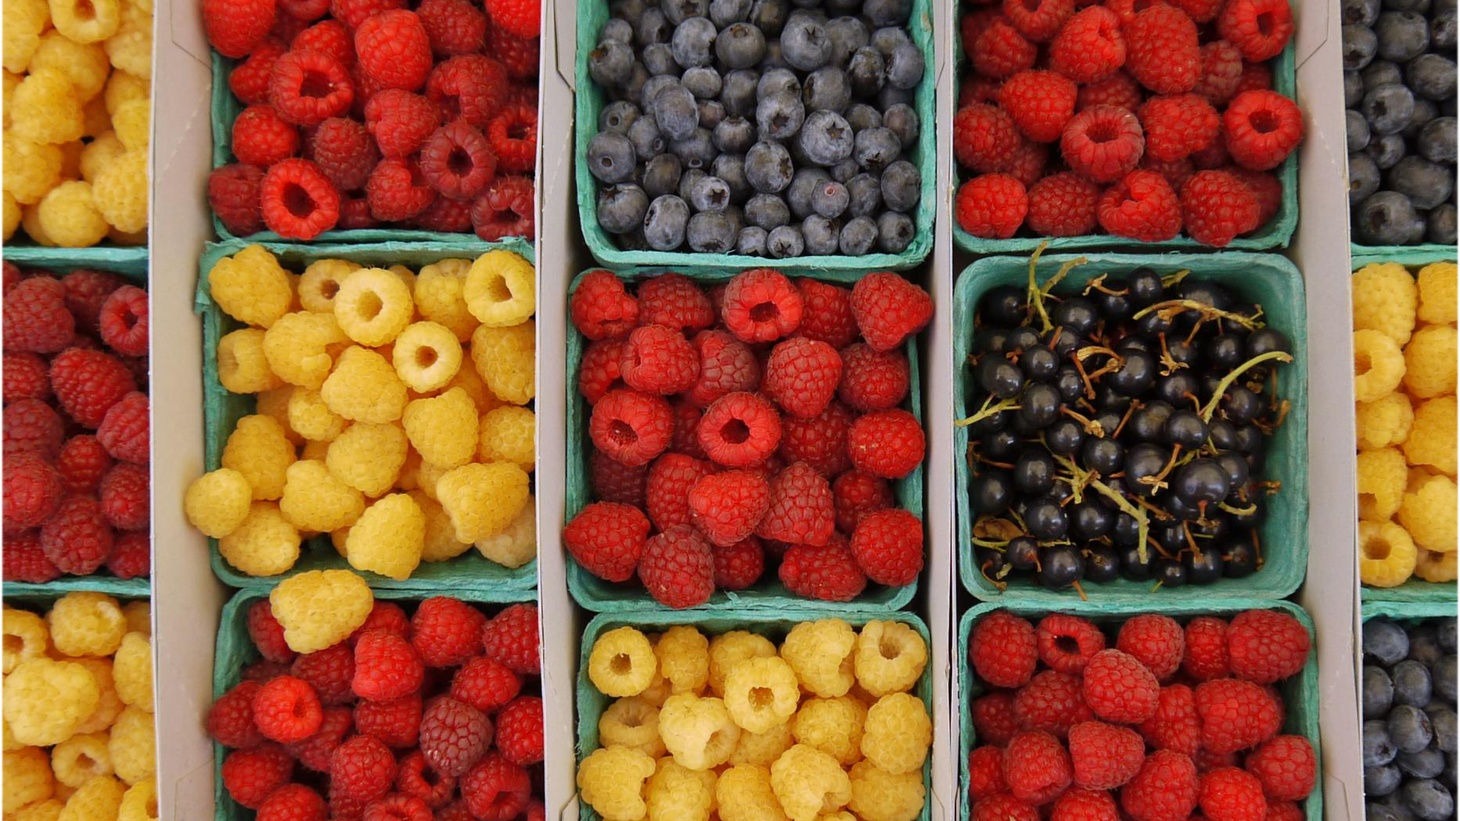 Various berries on display at the Santa Monica Farmers Market.